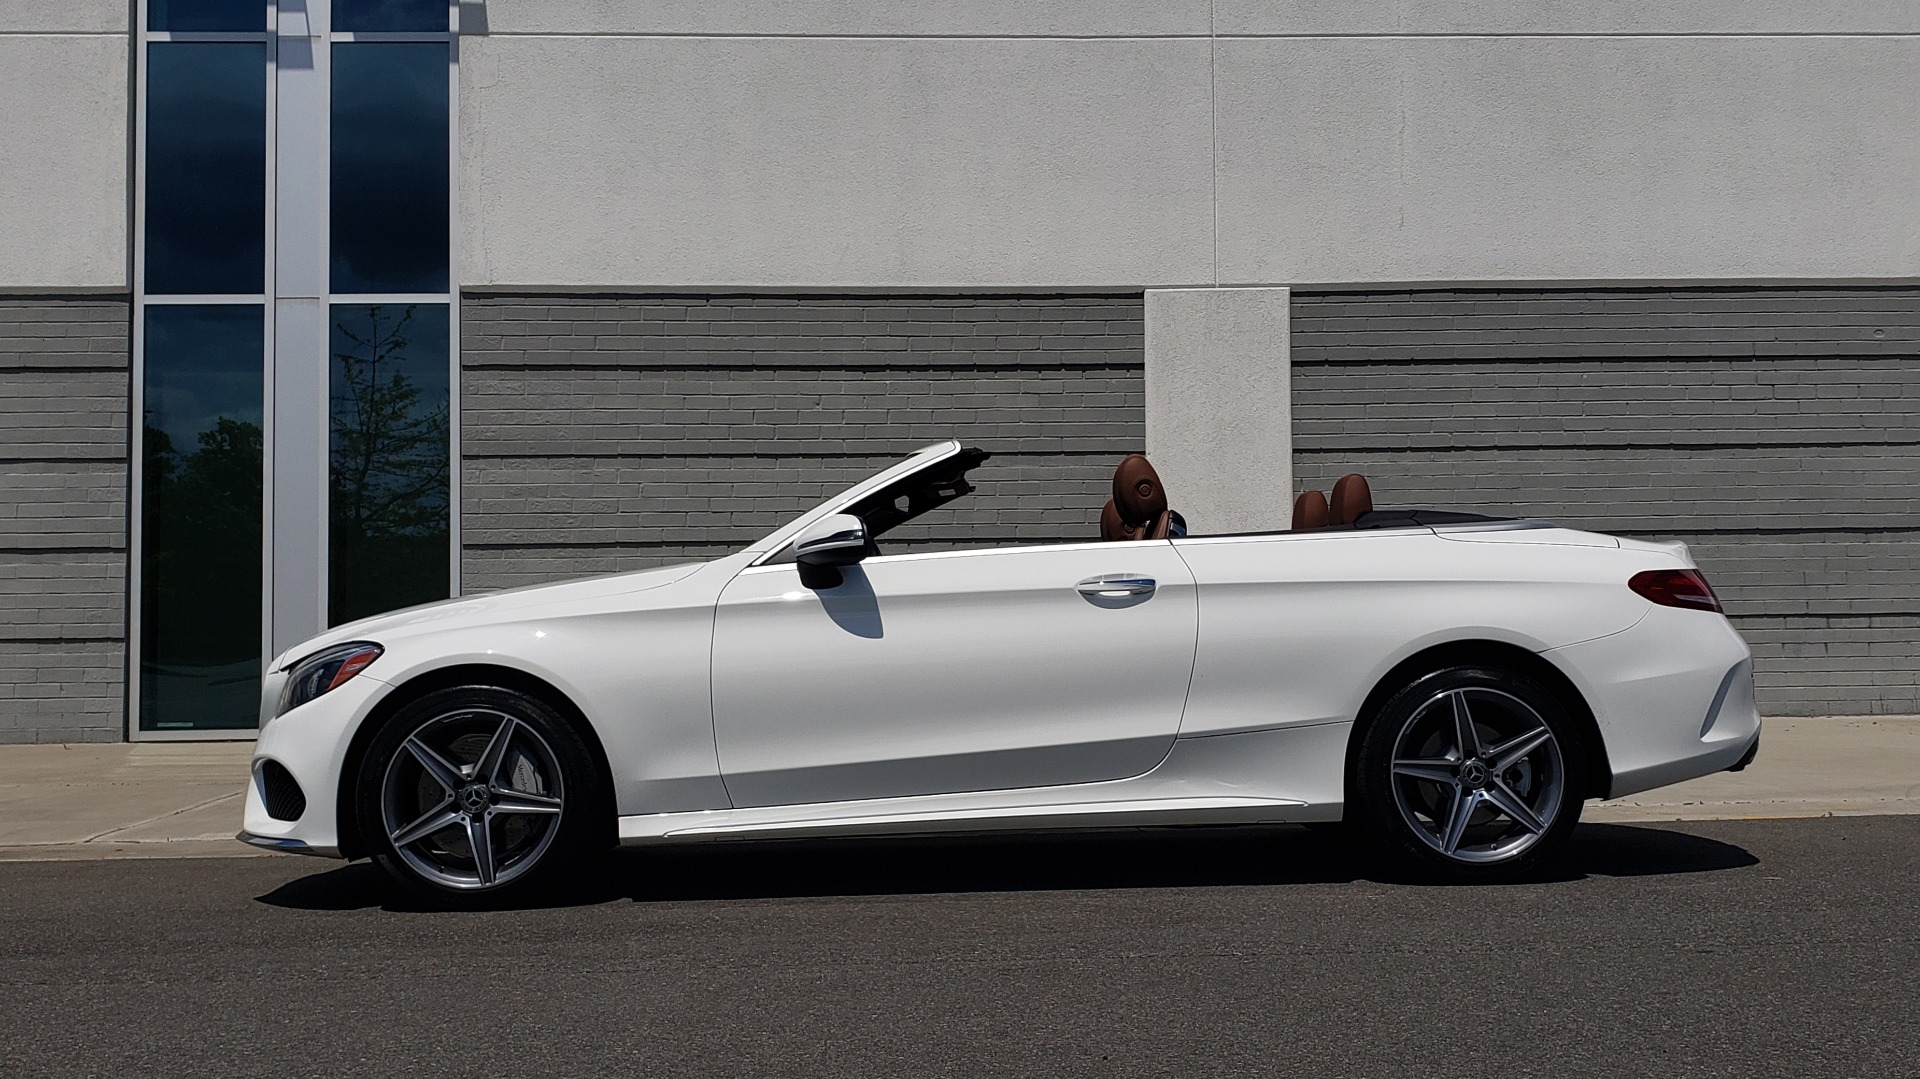 Used 2018 Mercedes-Benz C-CLASS C 300 CABRIOLET PREMIUM / AWD / BURMESTER SND / APPLE / REARVIEW for sale $44,995 at Formula Imports in Charlotte NC 28227 10